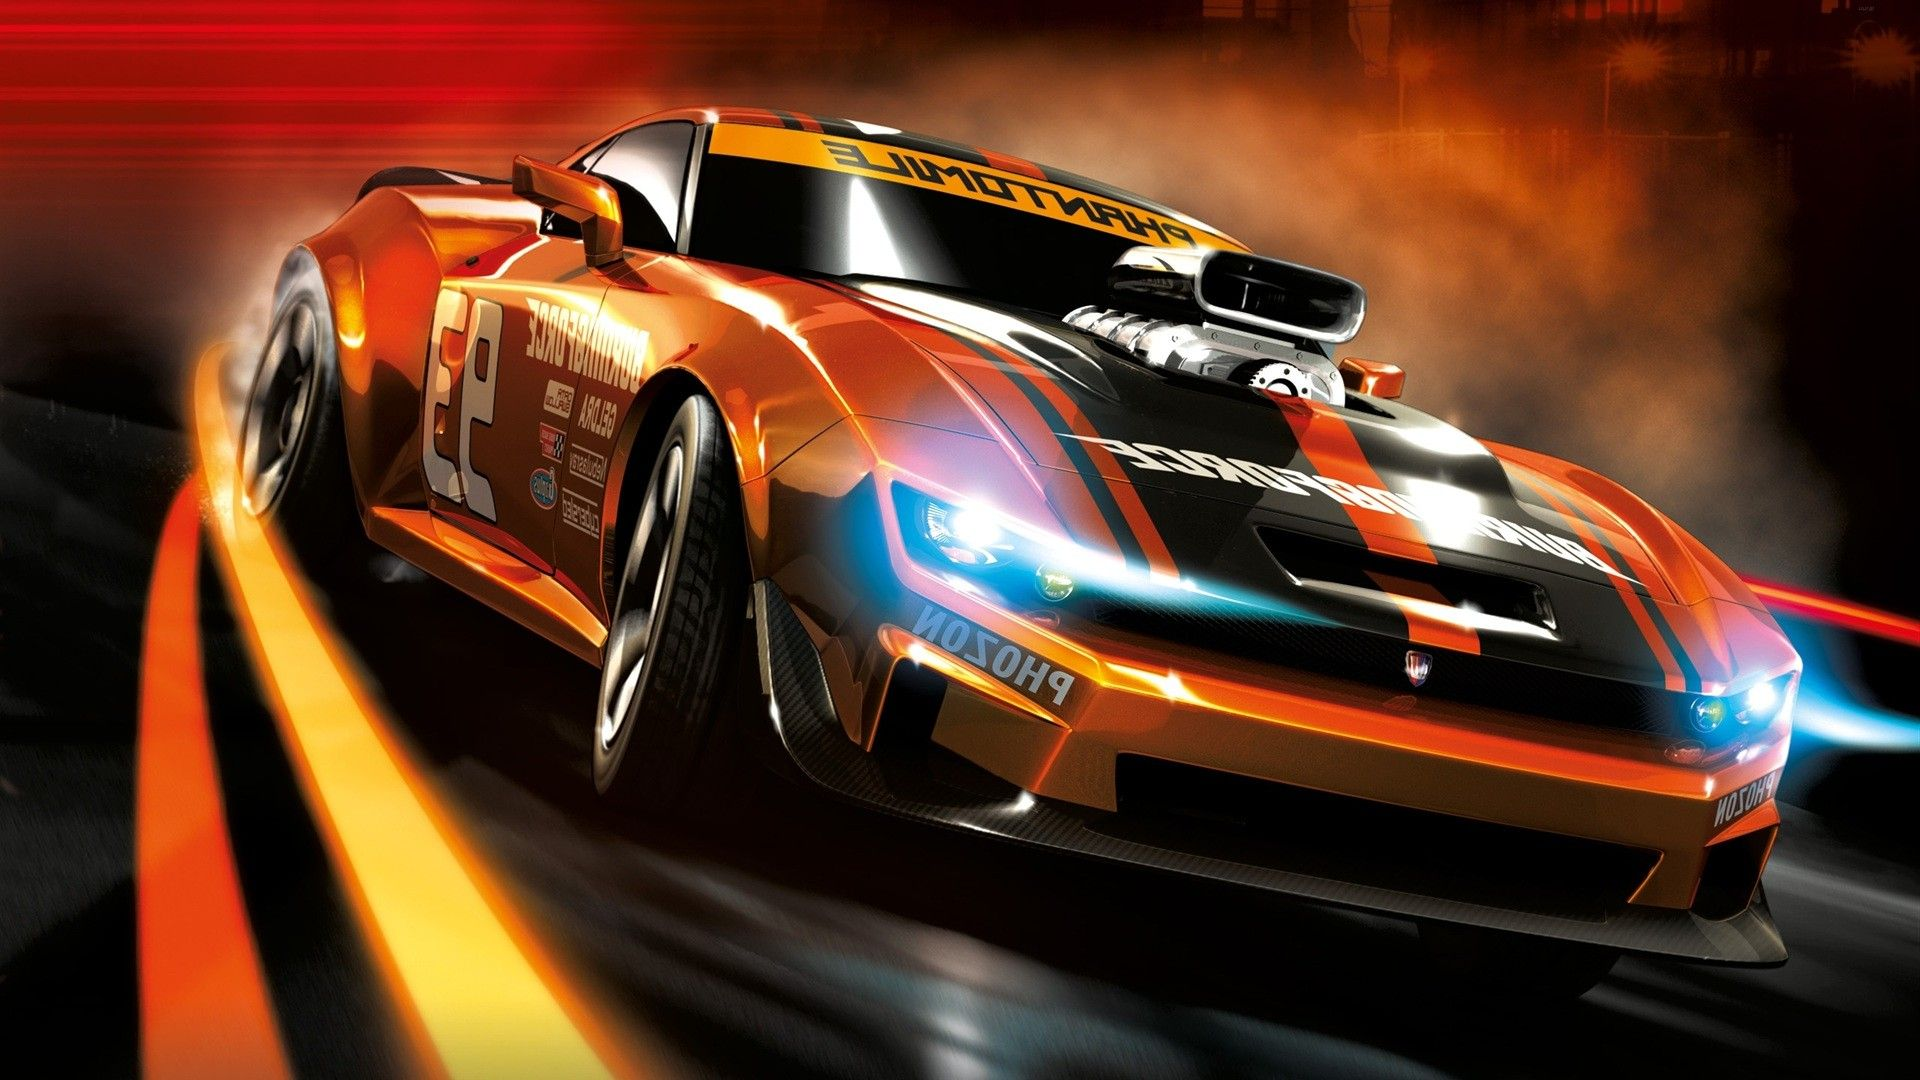 Cool Car Background Wallpapers   Wallpapers, Backgrounds, Images ...   awesome cars for my boys